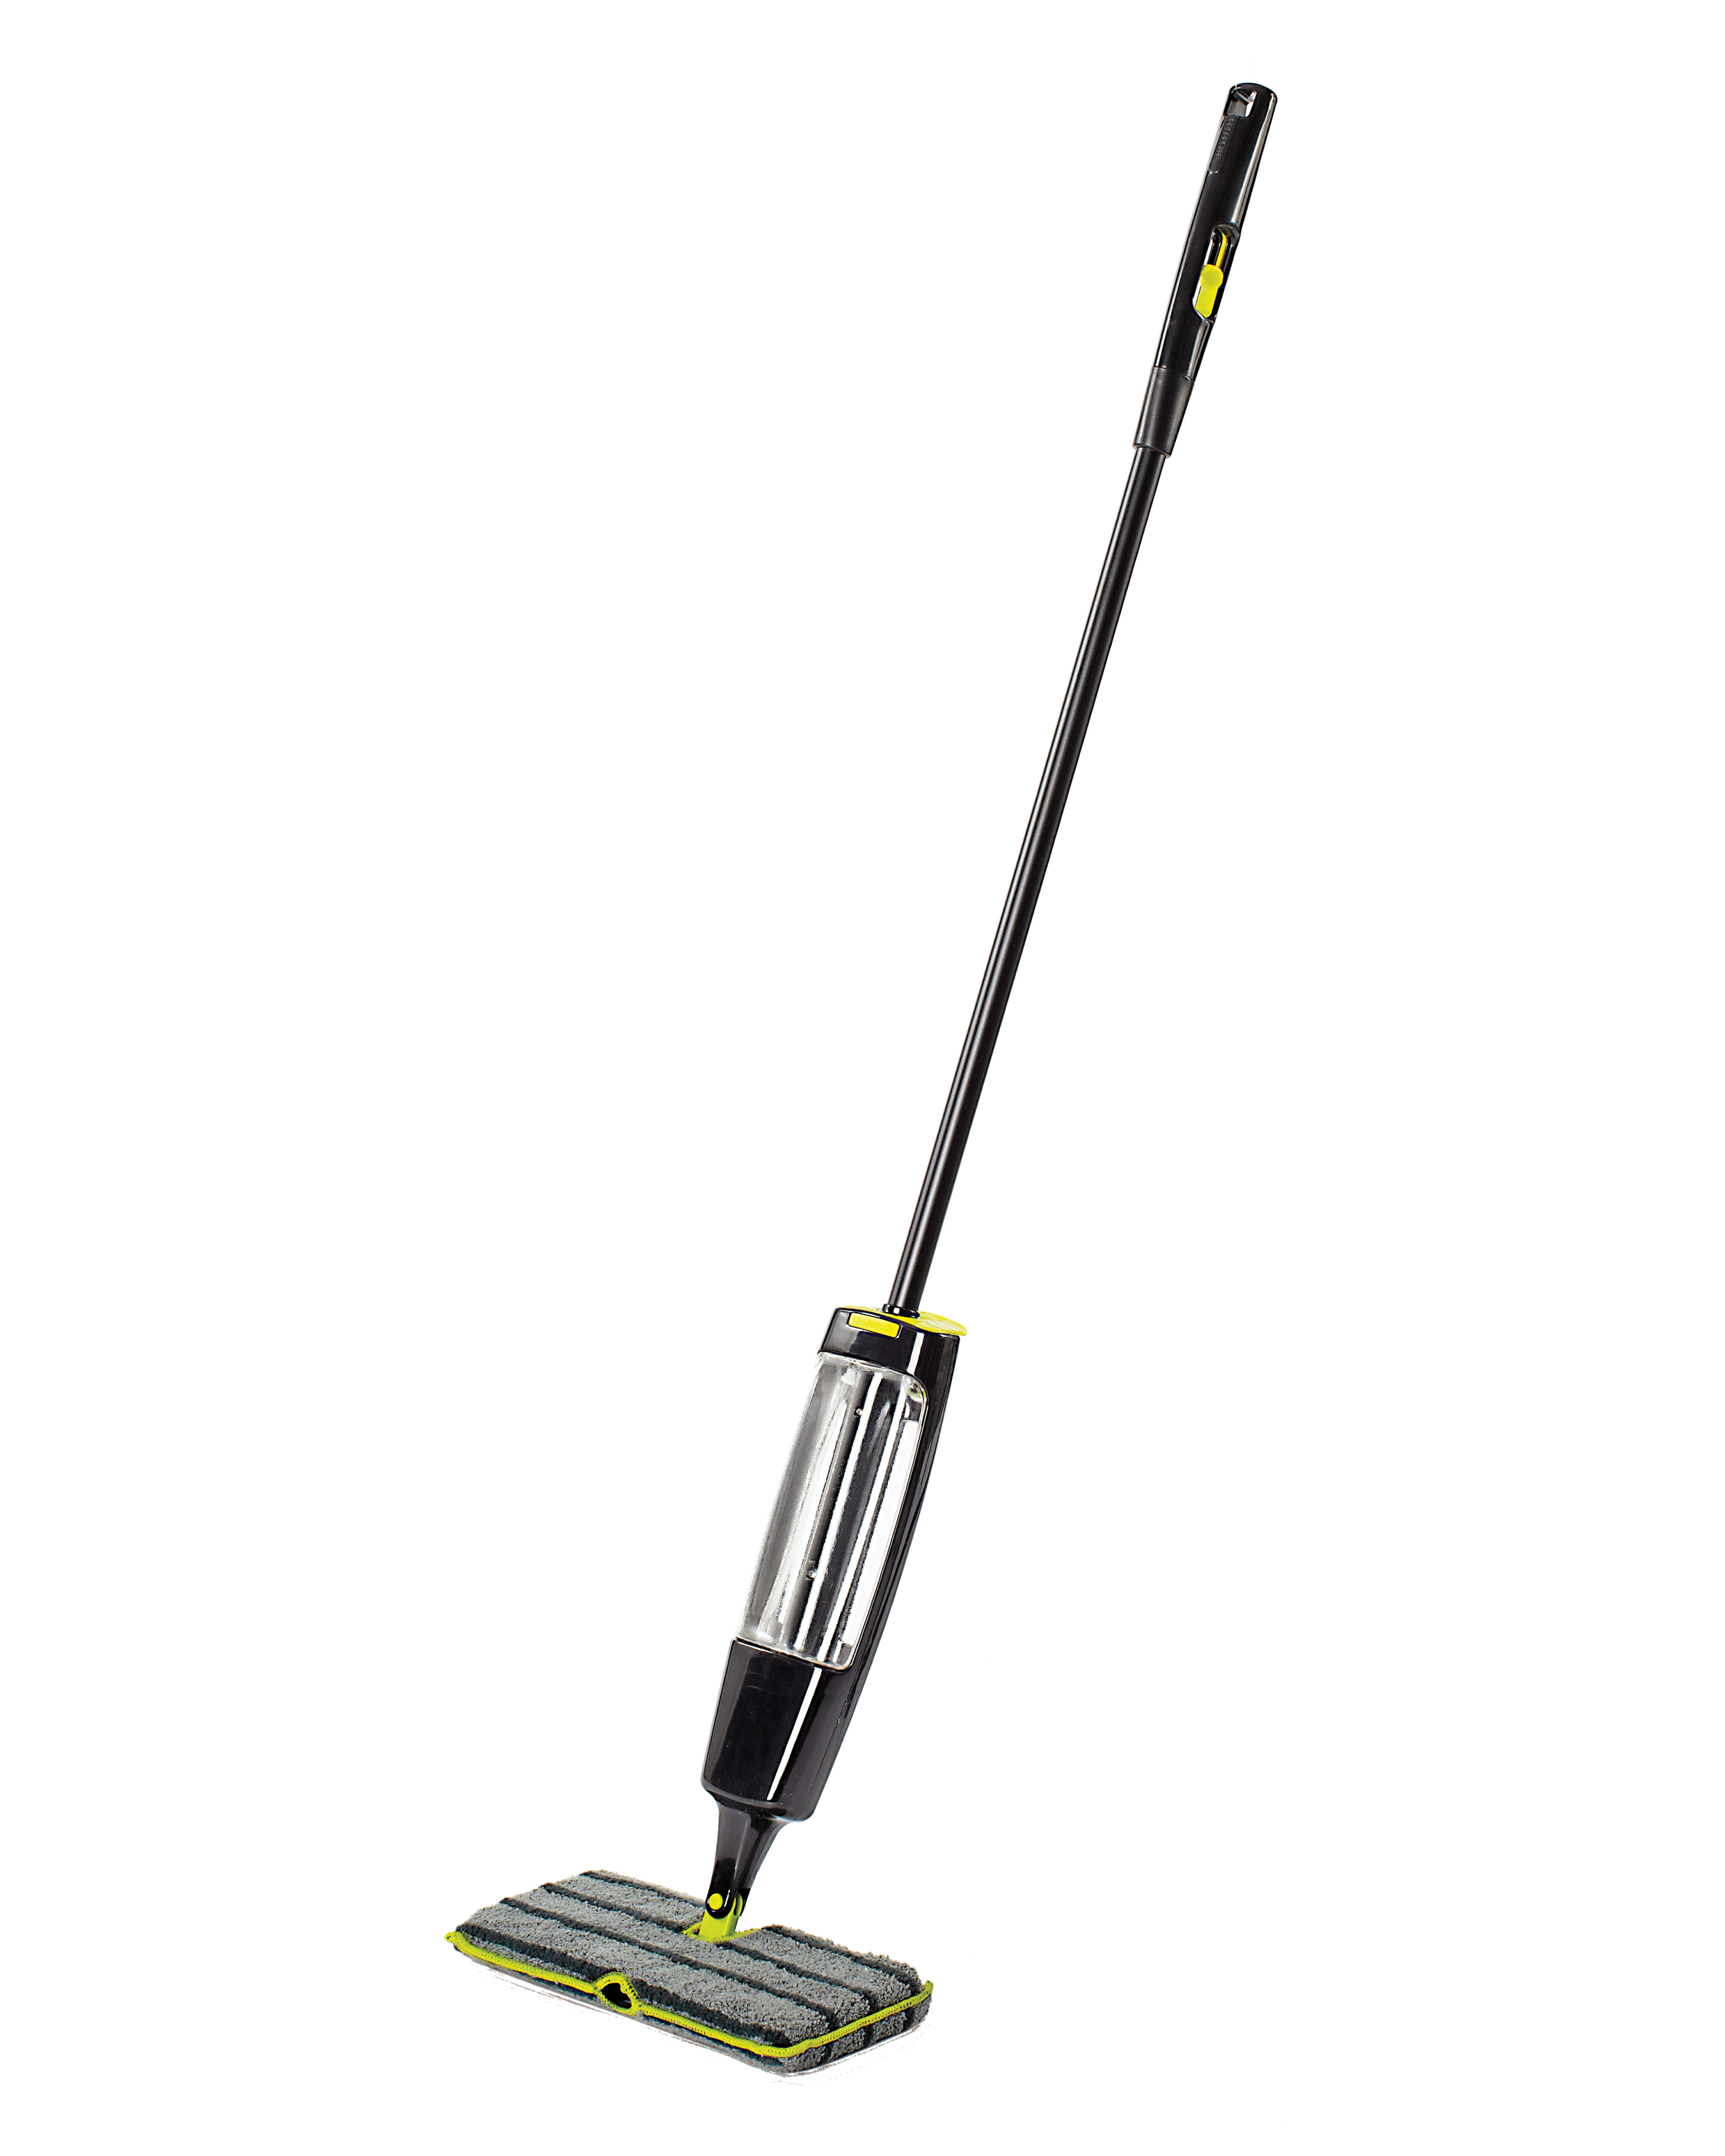 cb-steam-mop-020-mld110686.jpg